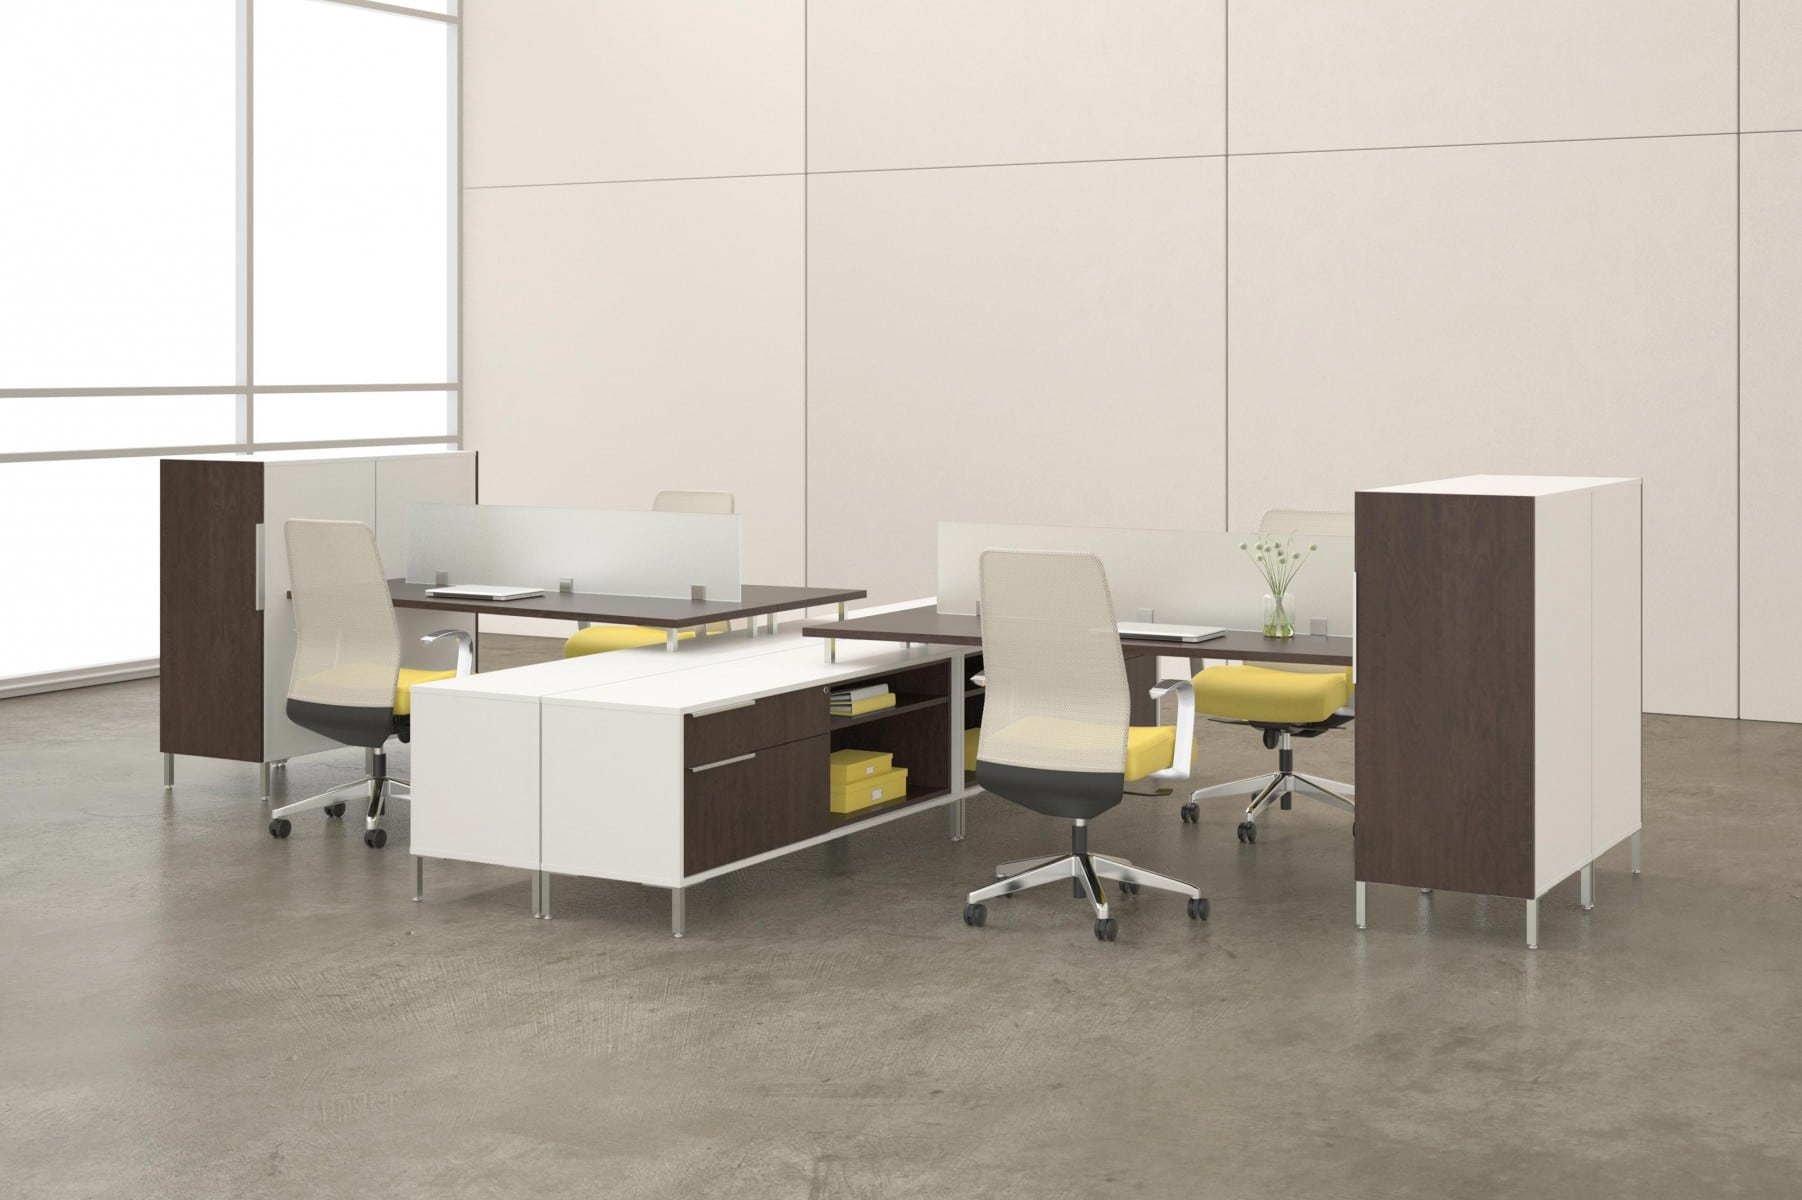 modern office desk furniture system with yellow and wood accents